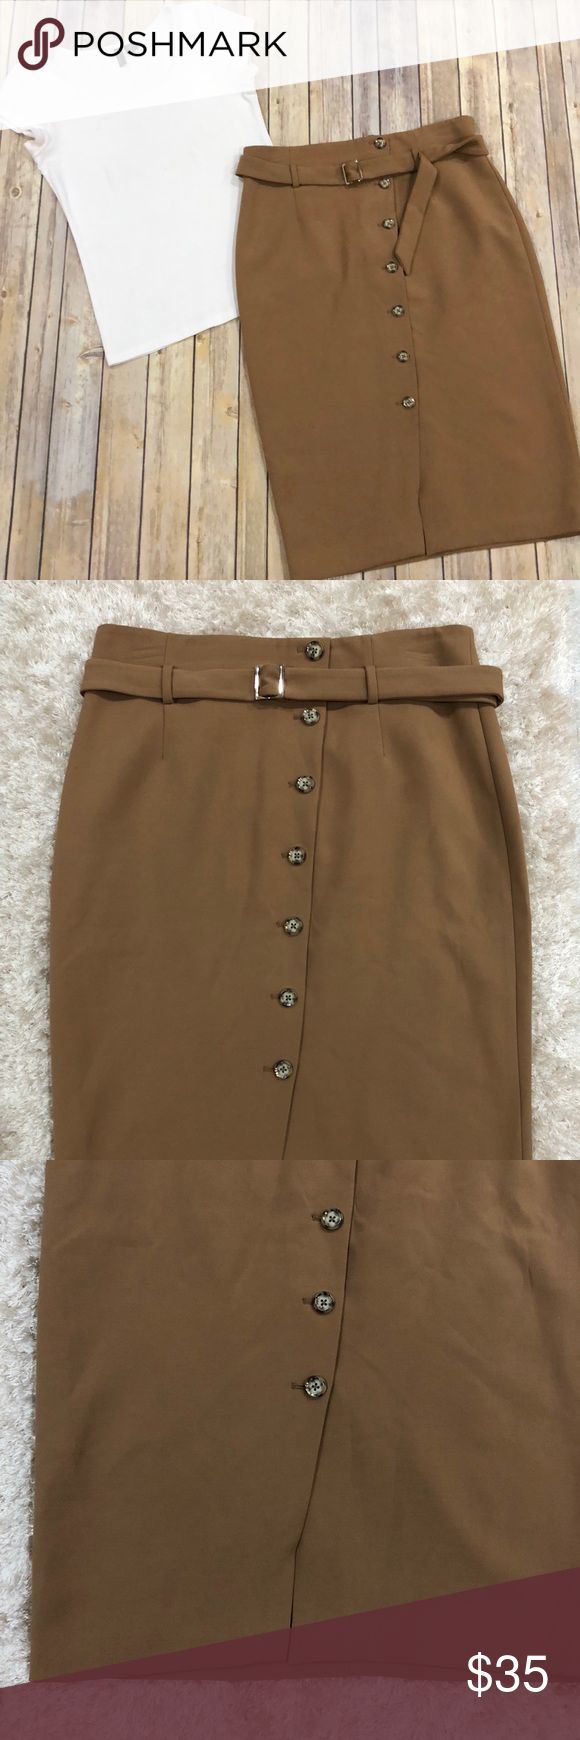 """WHBM camel Brown pencil skirt 14 Gorgeous pencil skirt with small front slit - built in belt -back zipper - versatile can be dressed up or down  High Waist: 17"""" Length: 29"""" Hip: 21.5"""" Please let me know if you have any questions White House Black Market Skirts Pencil"""